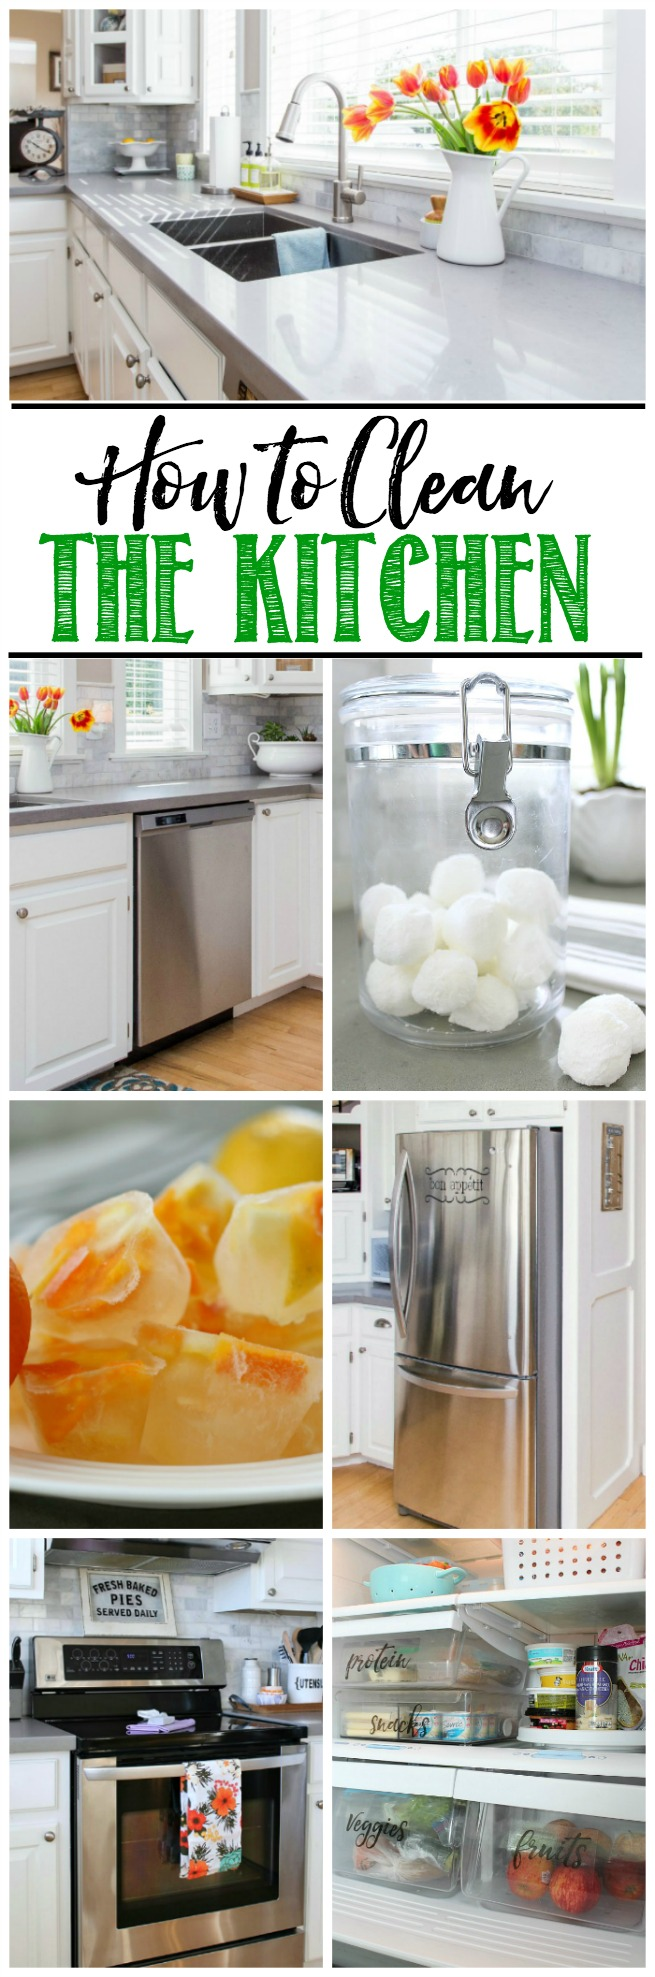 EVERYTHING you need to clean the kitchen and develop a plan to keep it that way. Tips, tutorials, and free printables included. Part of The Household Organization Diet.